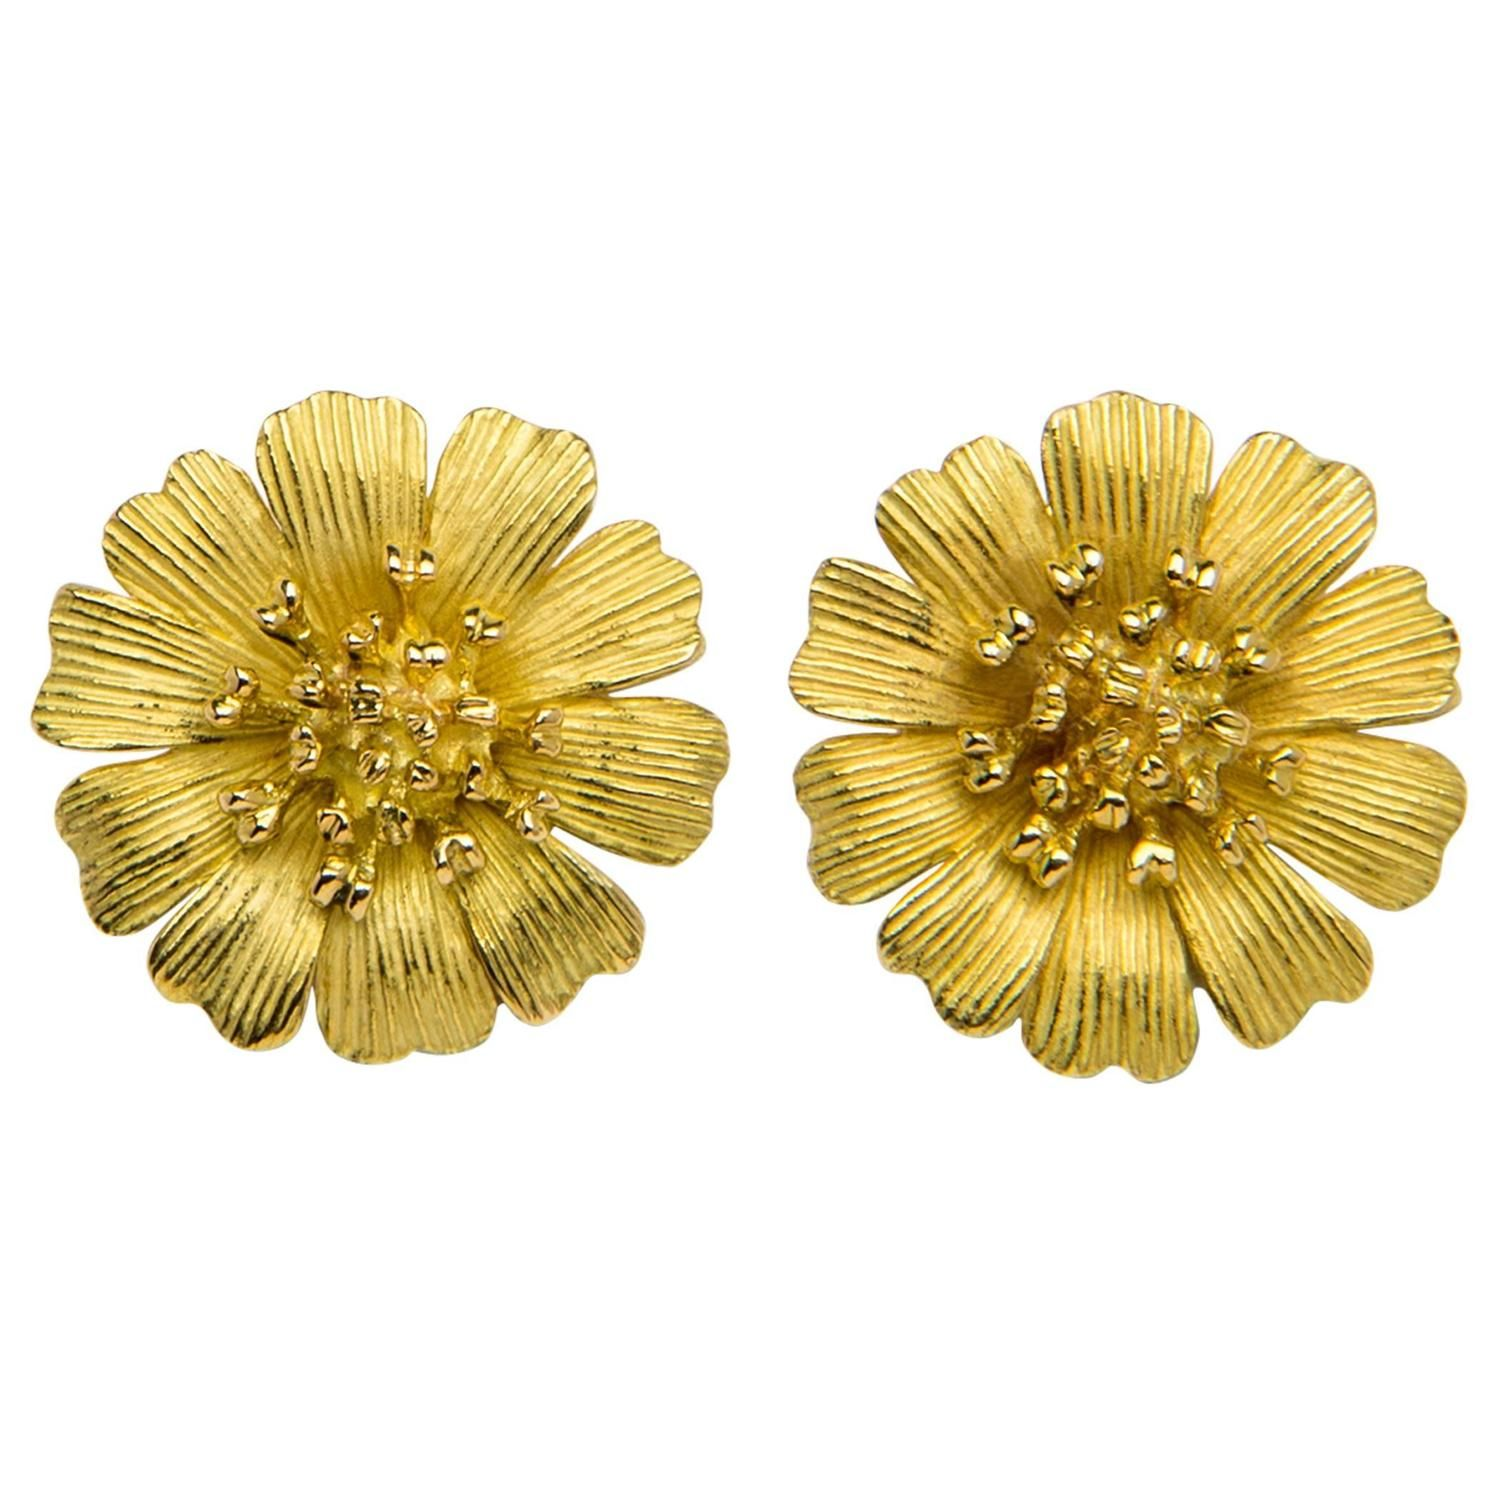 Tiffany Gold Flower Earrings